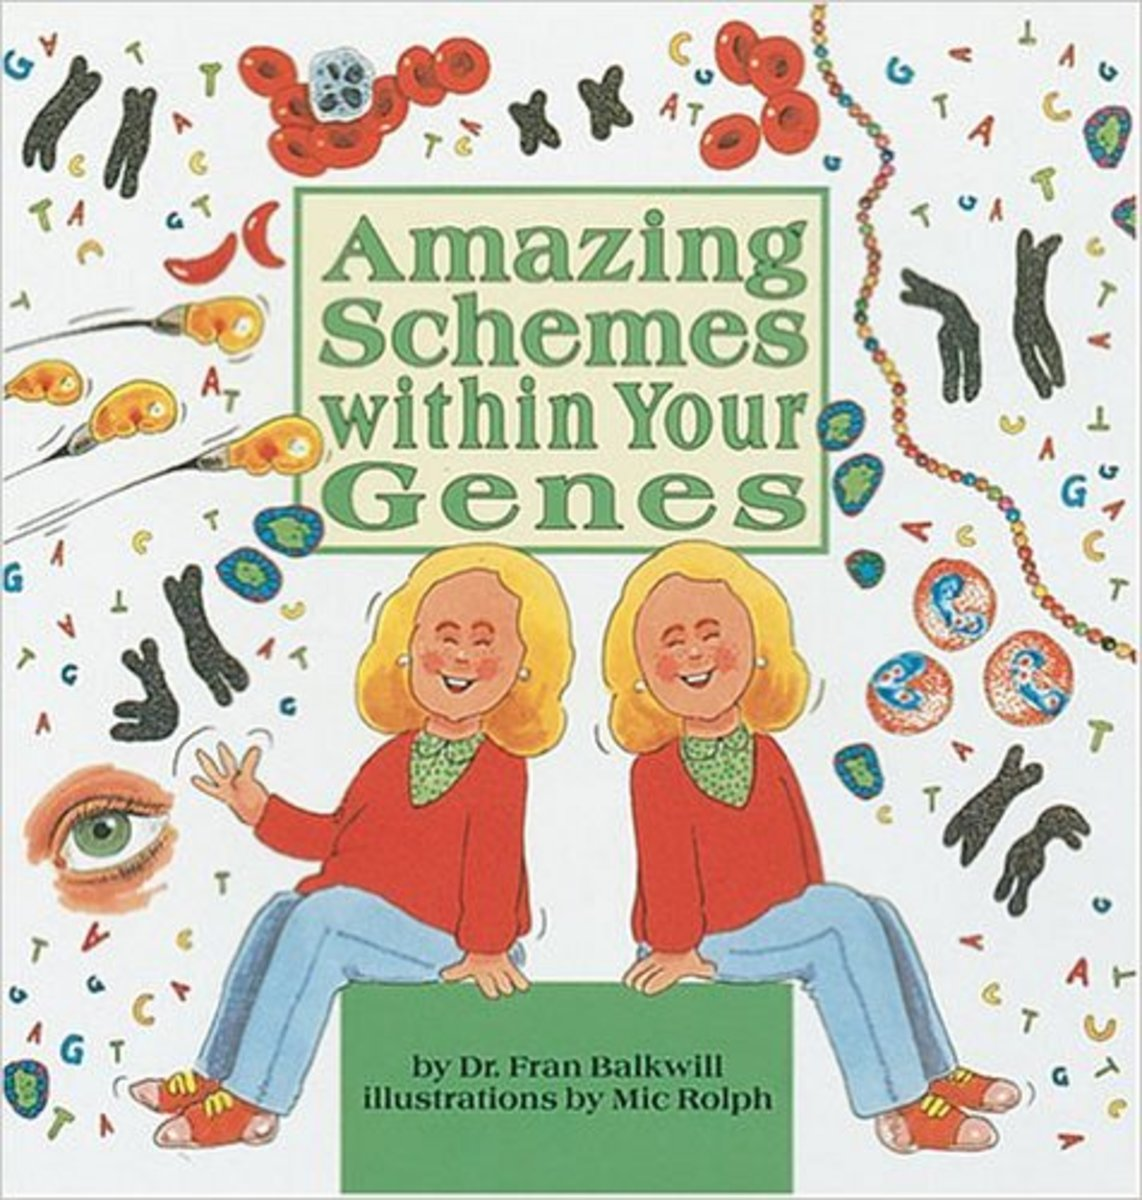 Amazing Schemes Within your Genes by Fran Balkwill